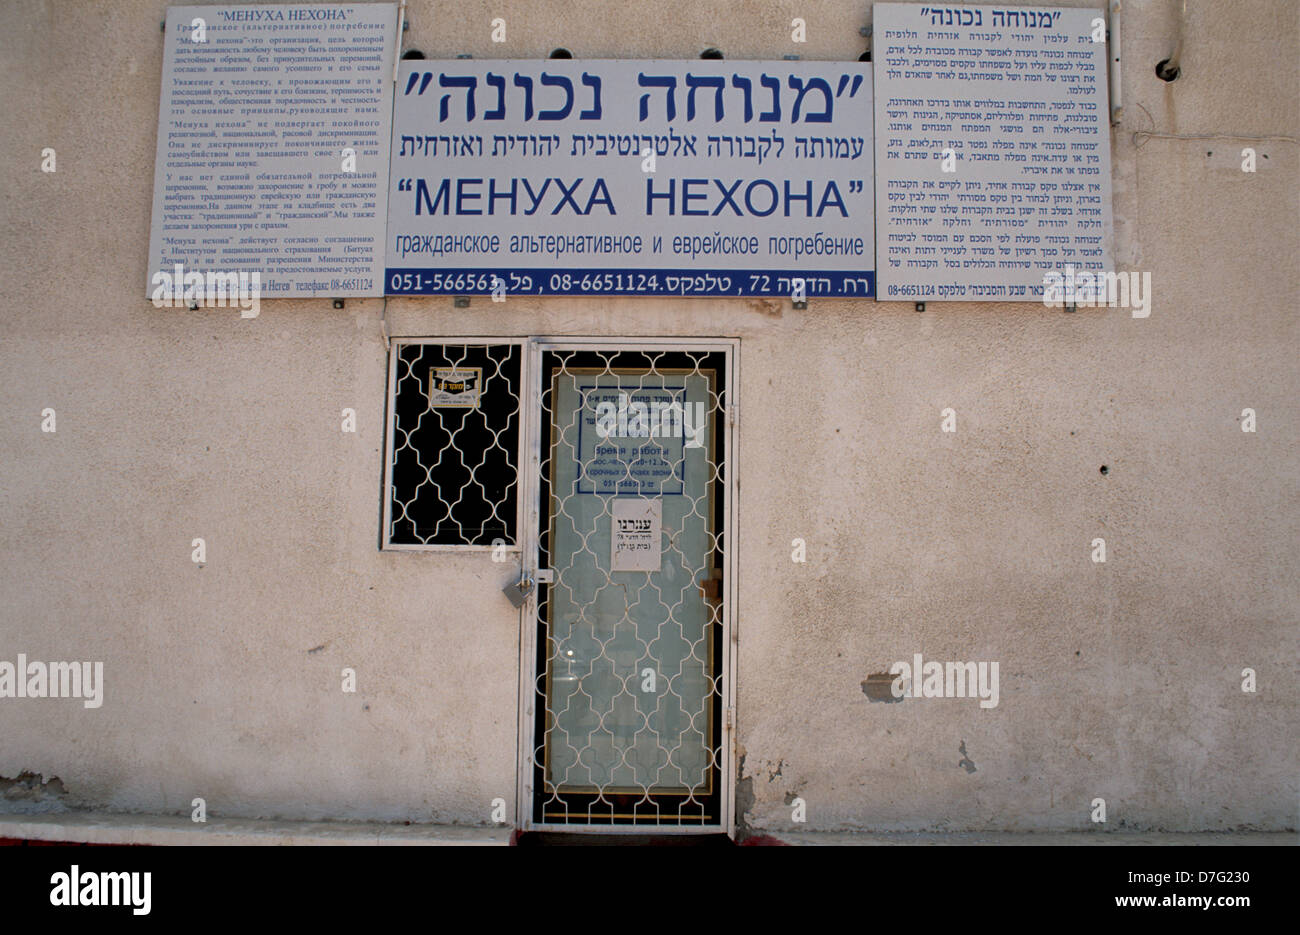 civil burial office in beer sheva - Stock Image